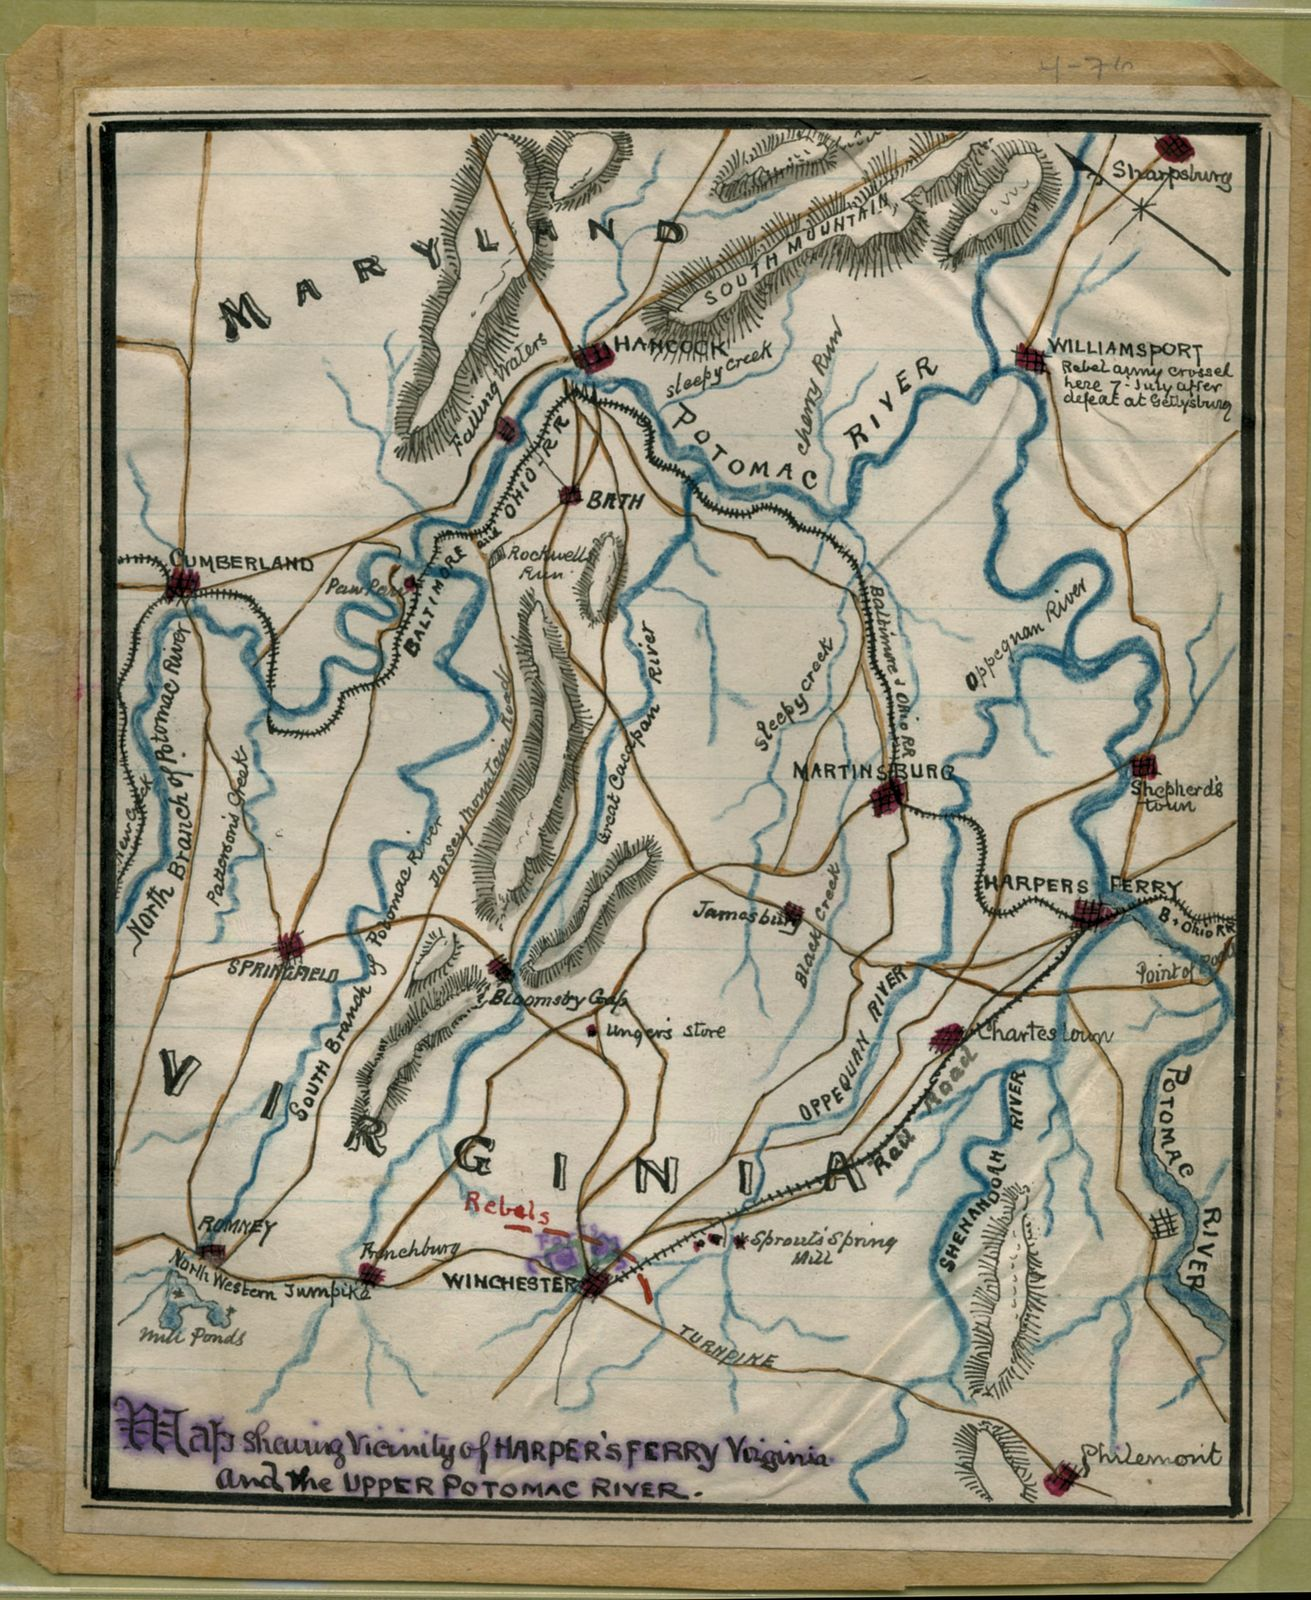 Harpers Ferry Virginia Map.Map Shewing Sic Vicinity Of Harper S Ferry Virginia And The